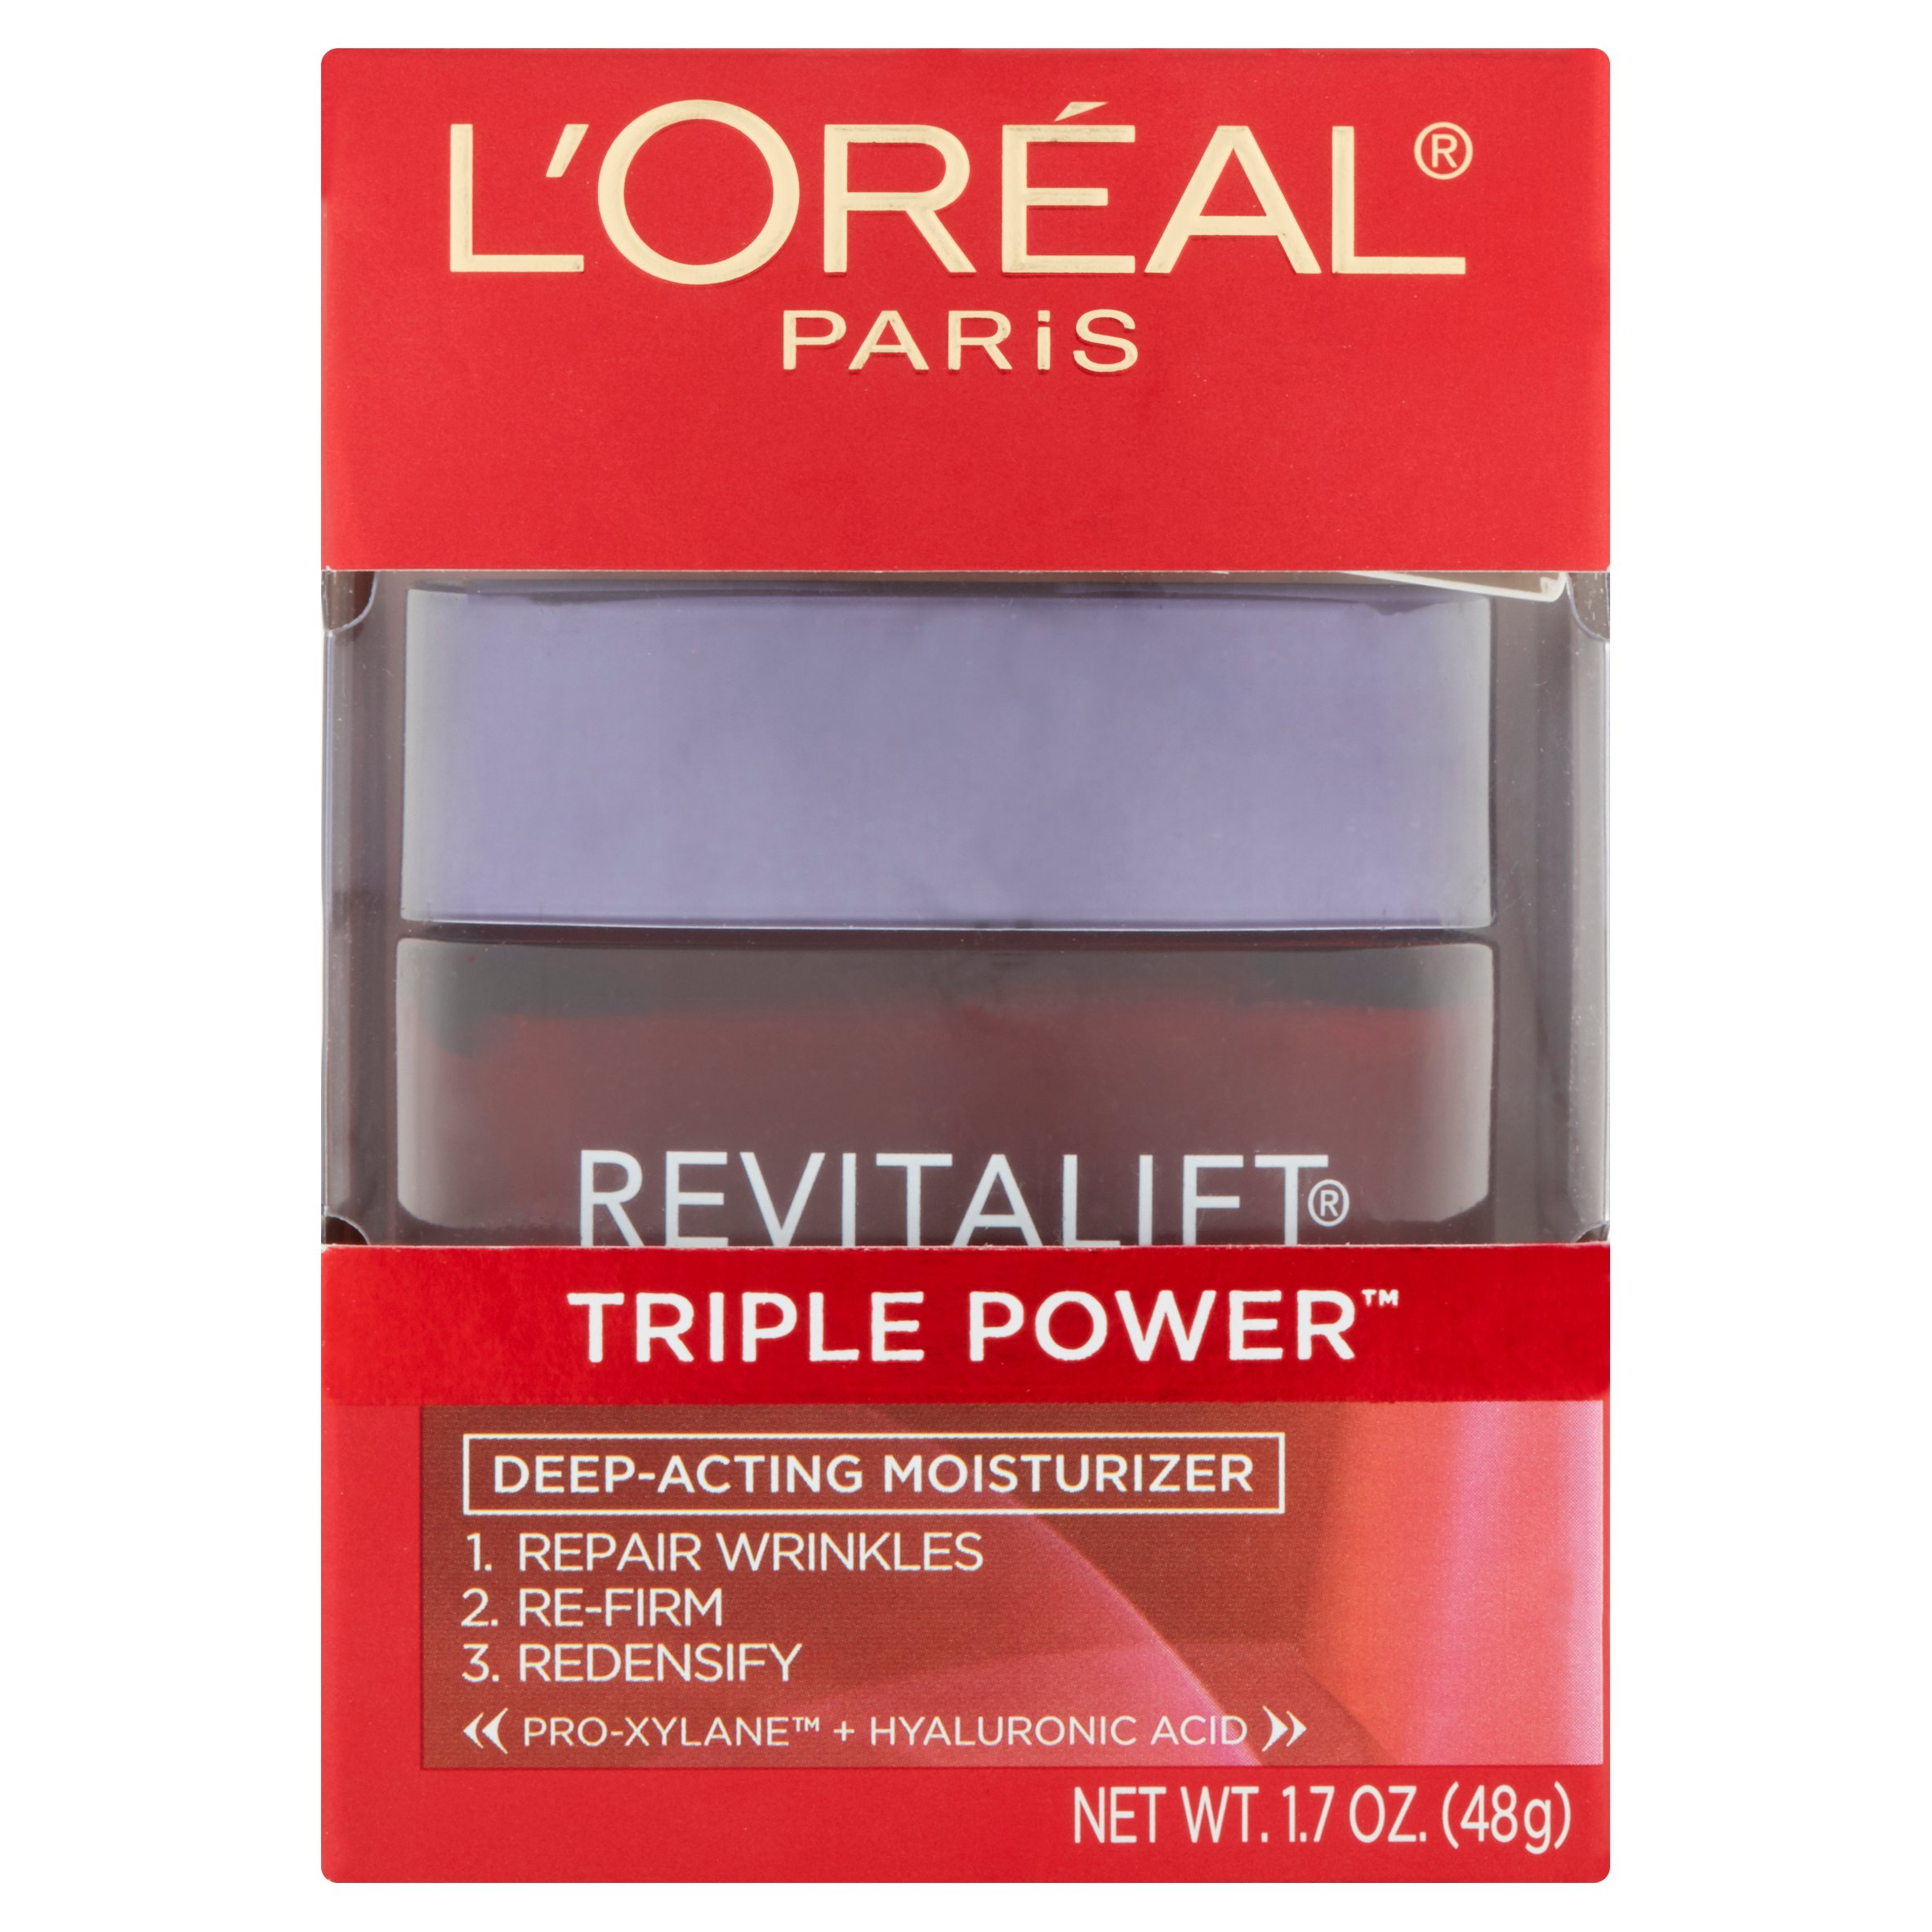 L'Oréal Paris Revitalift Triple Power Deep-Acting Moisturizer, 1.7 oz - Walmart.com